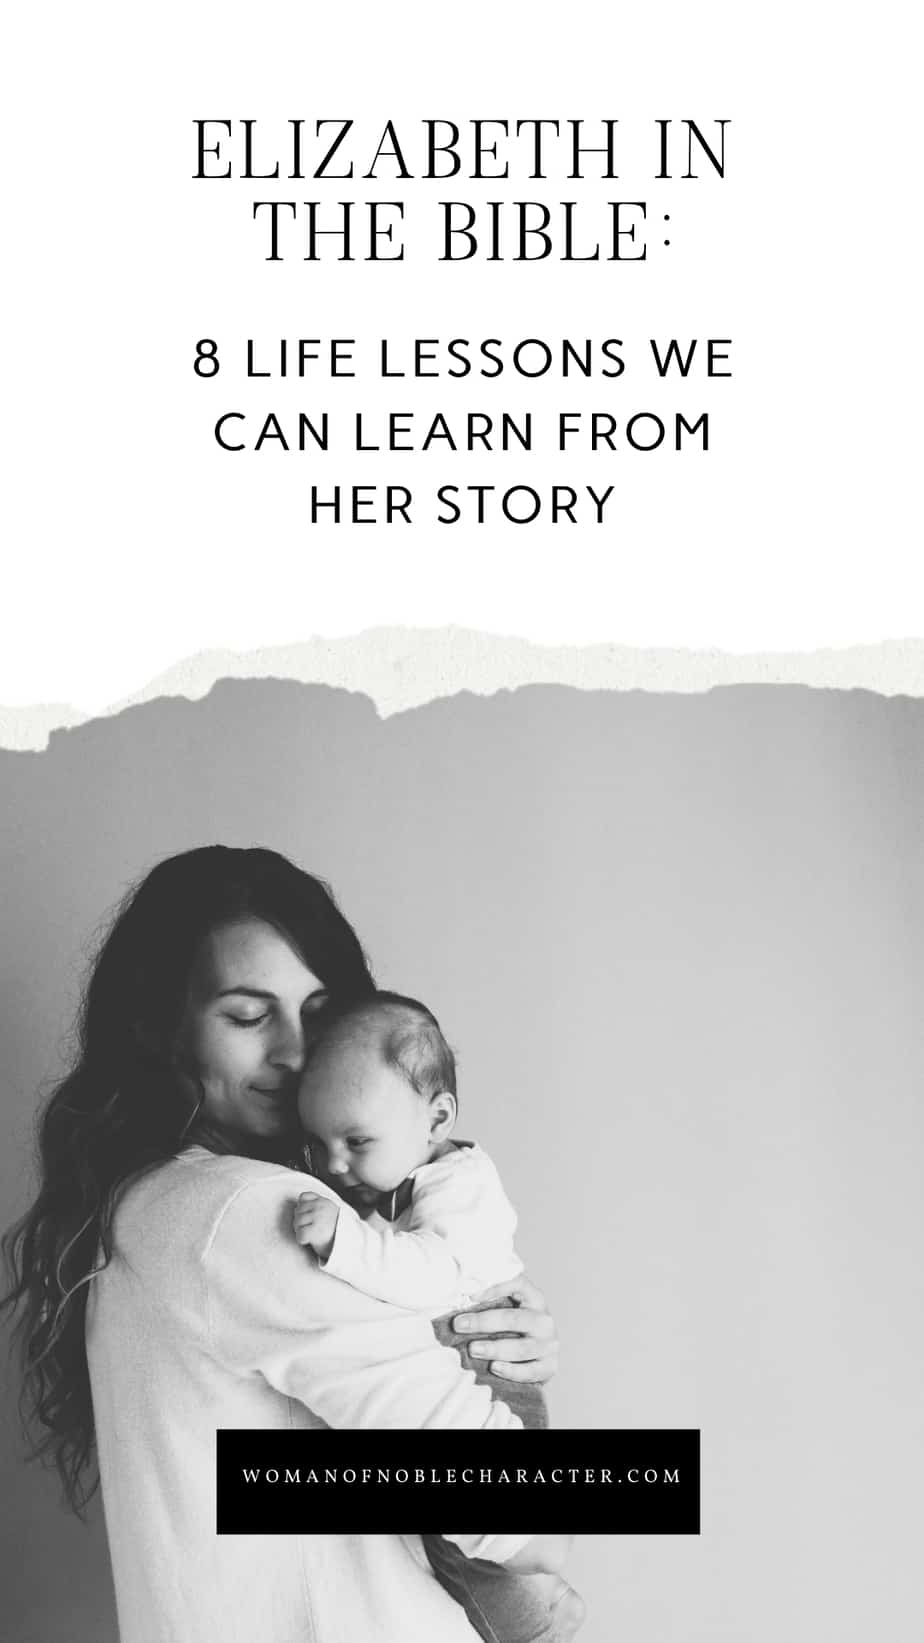 """An image of a mother holding her baby with an overlay of text that says , """"Elizabeth in the Bible: 8 Life Lessons We Can Learn from Her Story"""""""